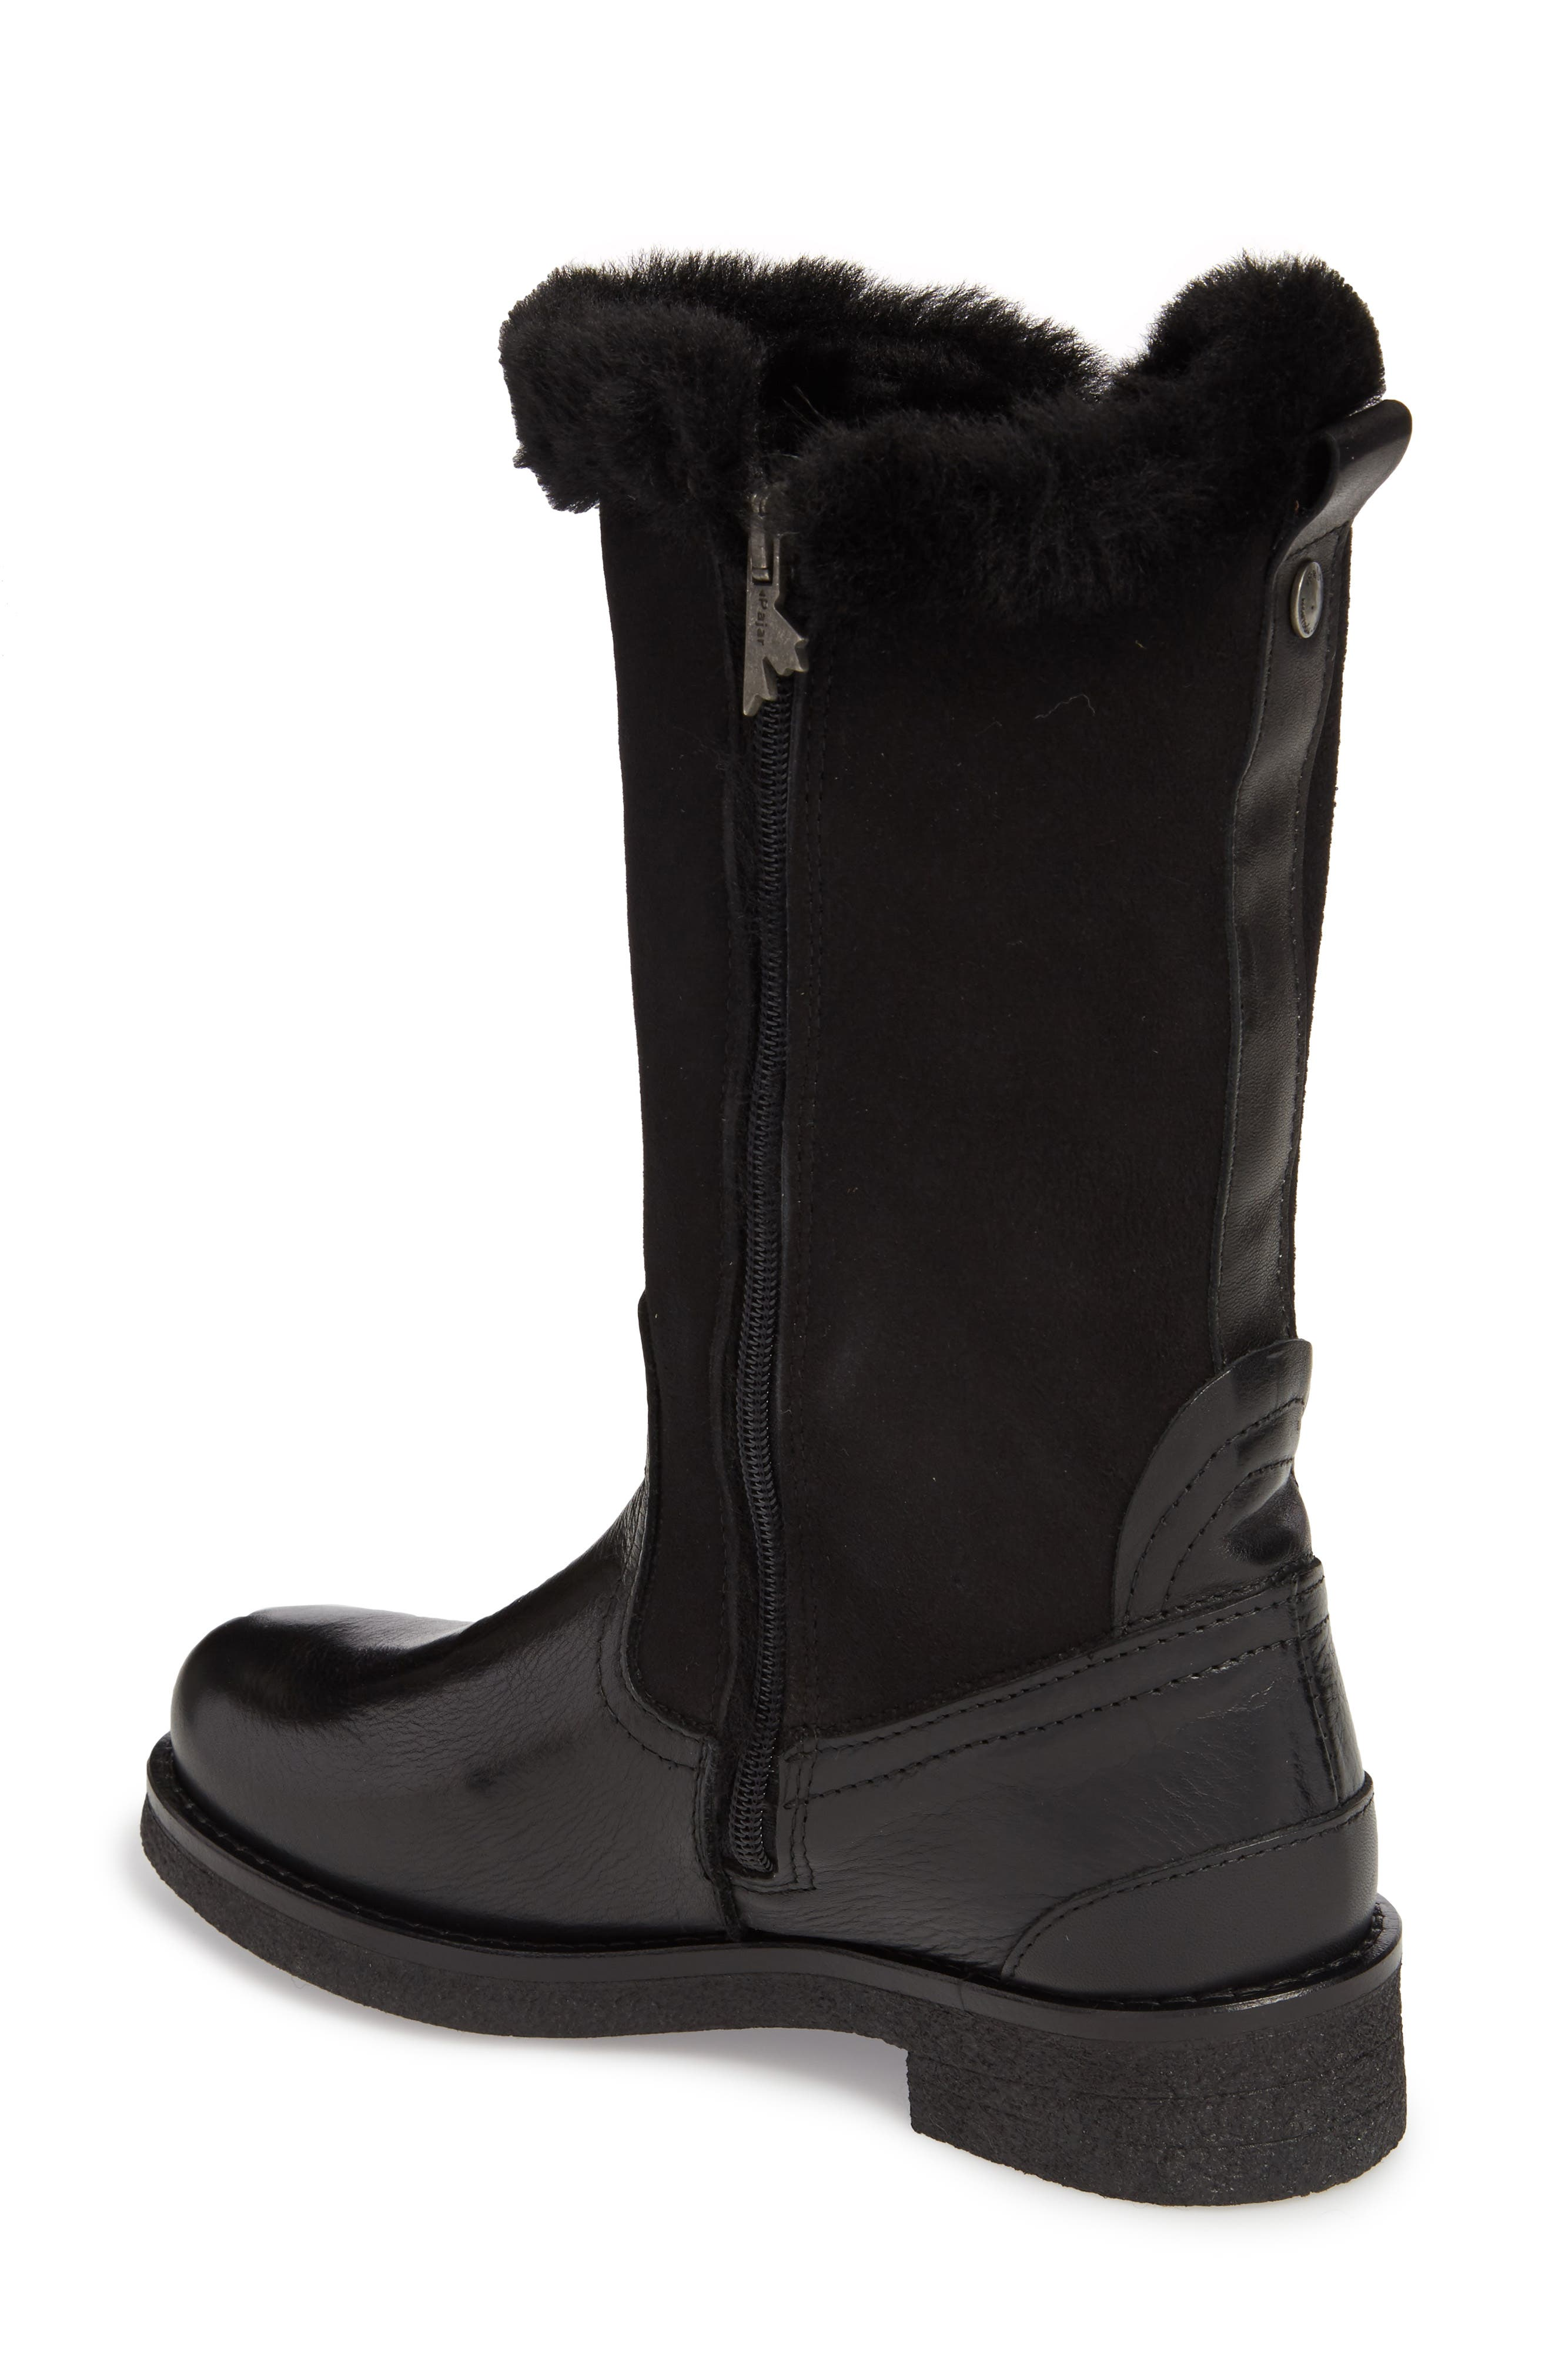 Amarillo Waterproof Insulated Snow Boot,                             Alternate thumbnail 2, color,                             Black Fur Leather